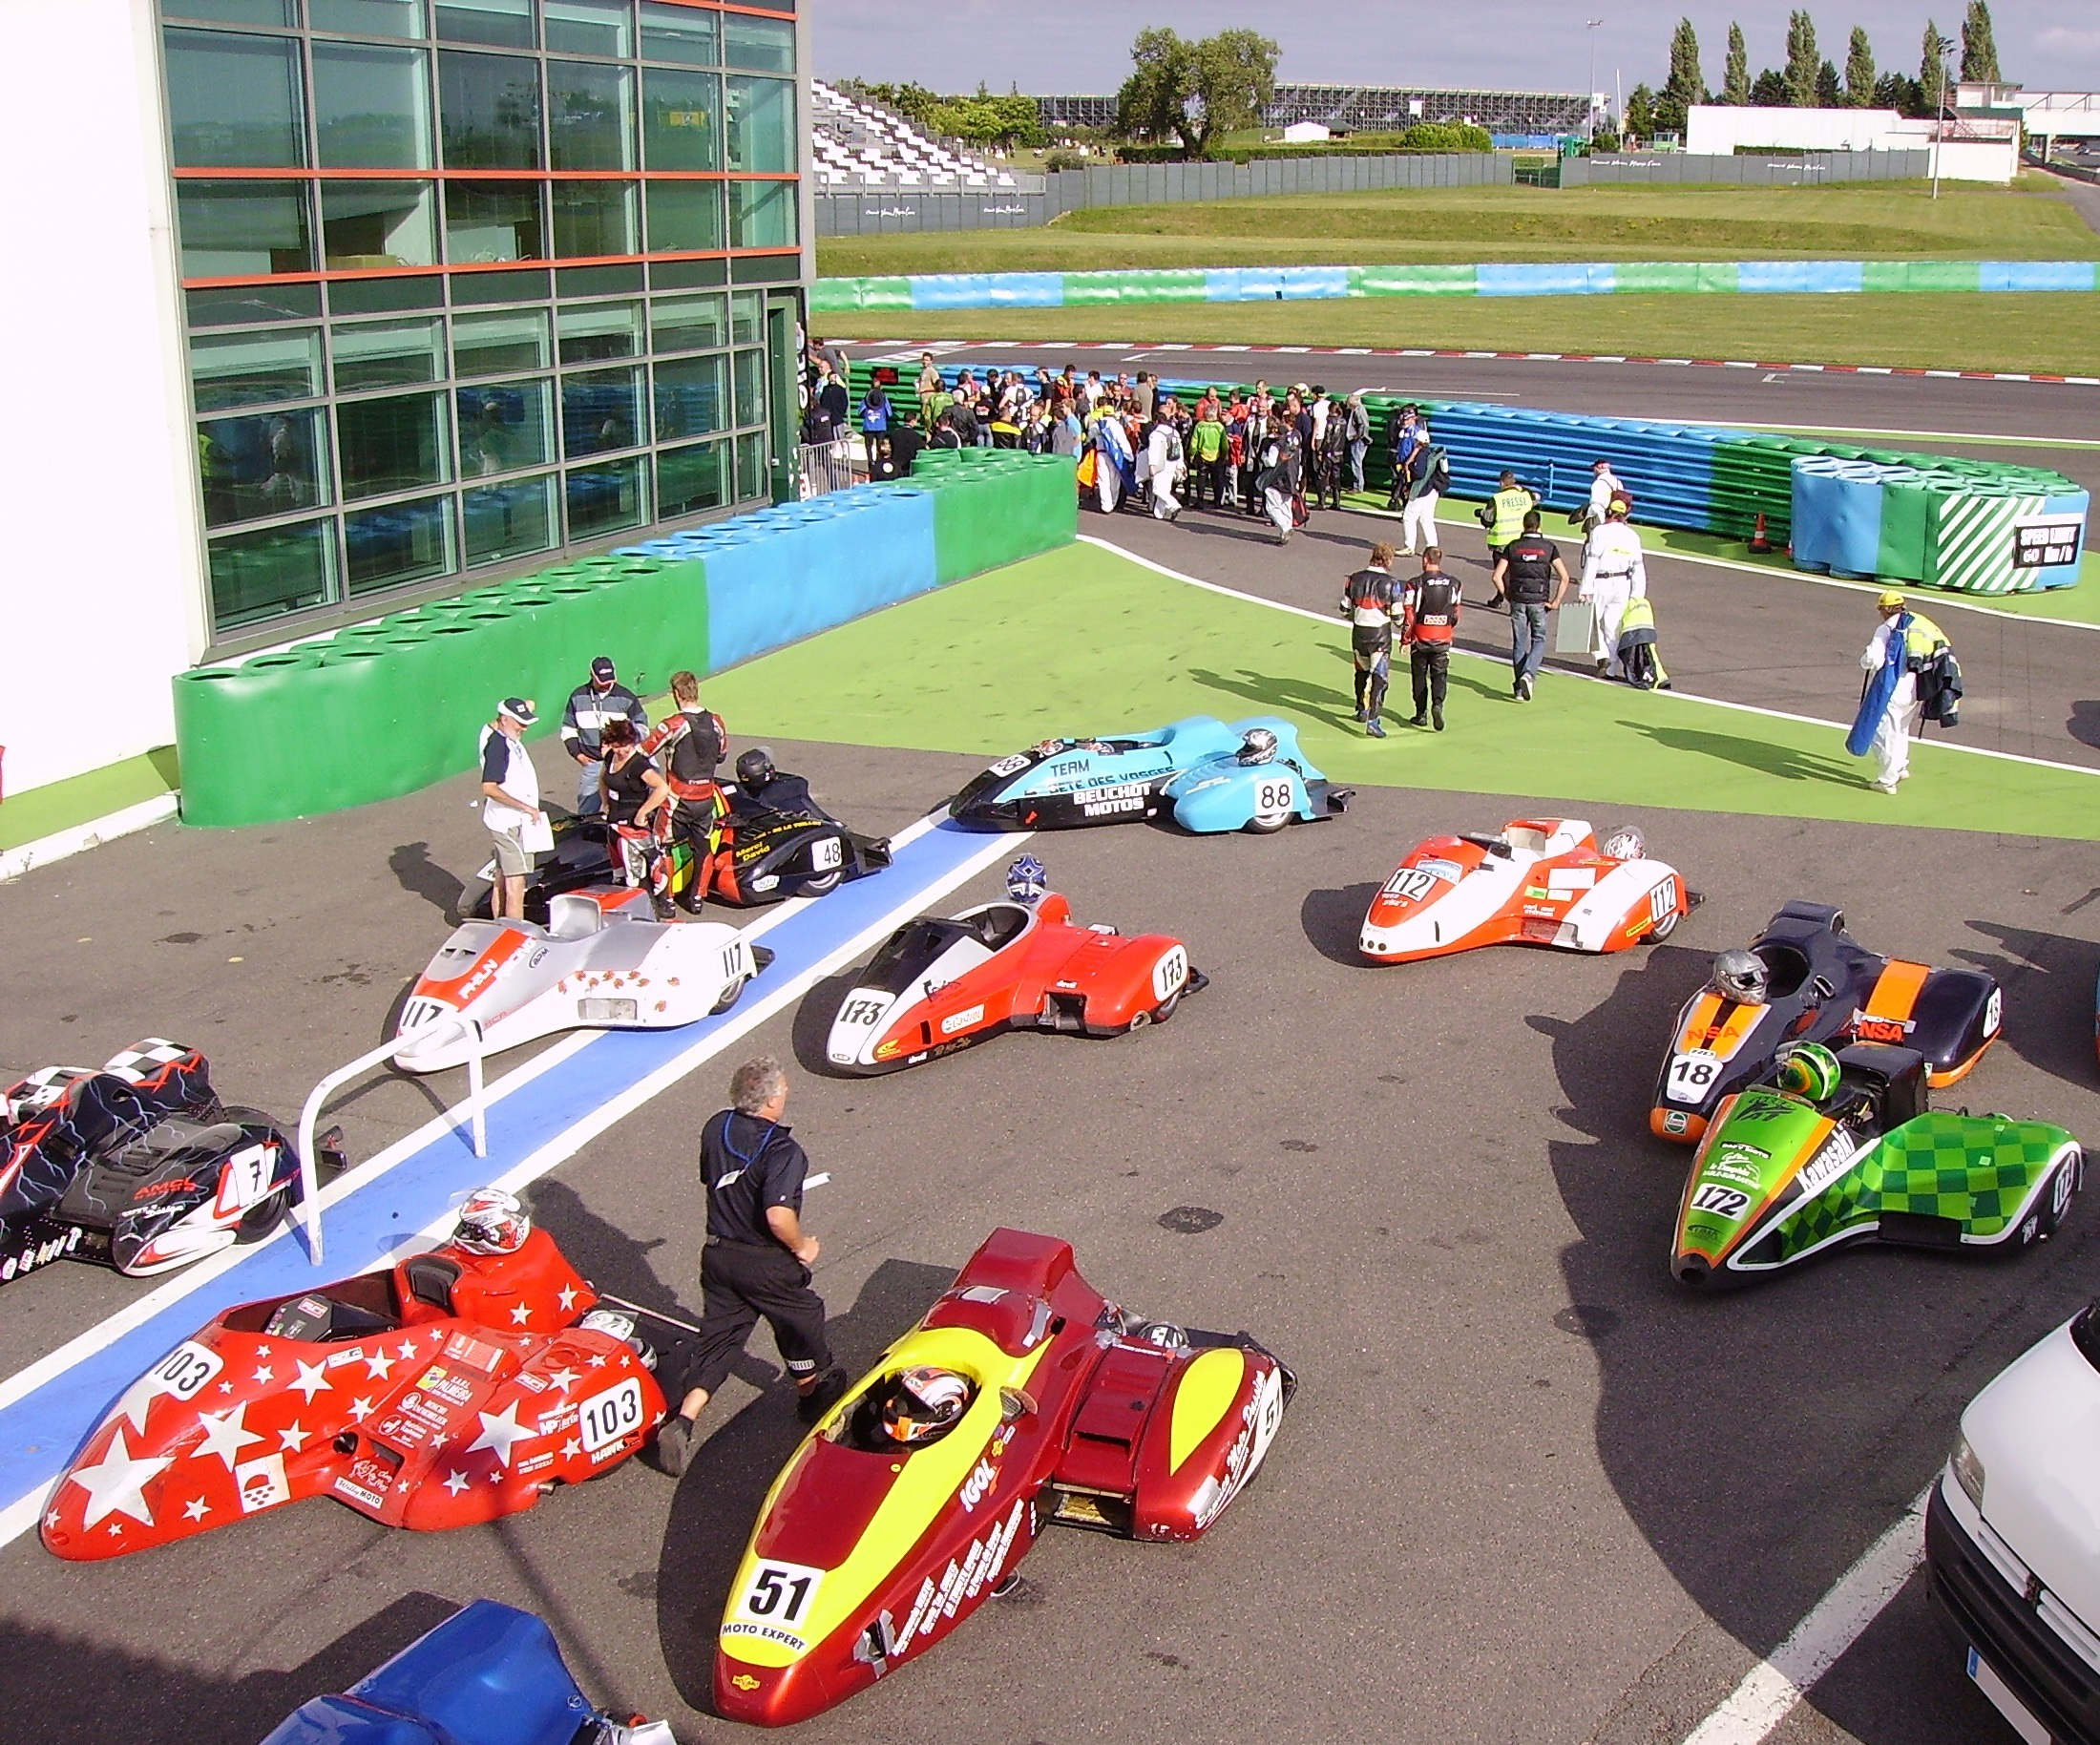 file racing sidecars circuit de nevers magny wikimedia commons. Black Bedroom Furniture Sets. Home Design Ideas